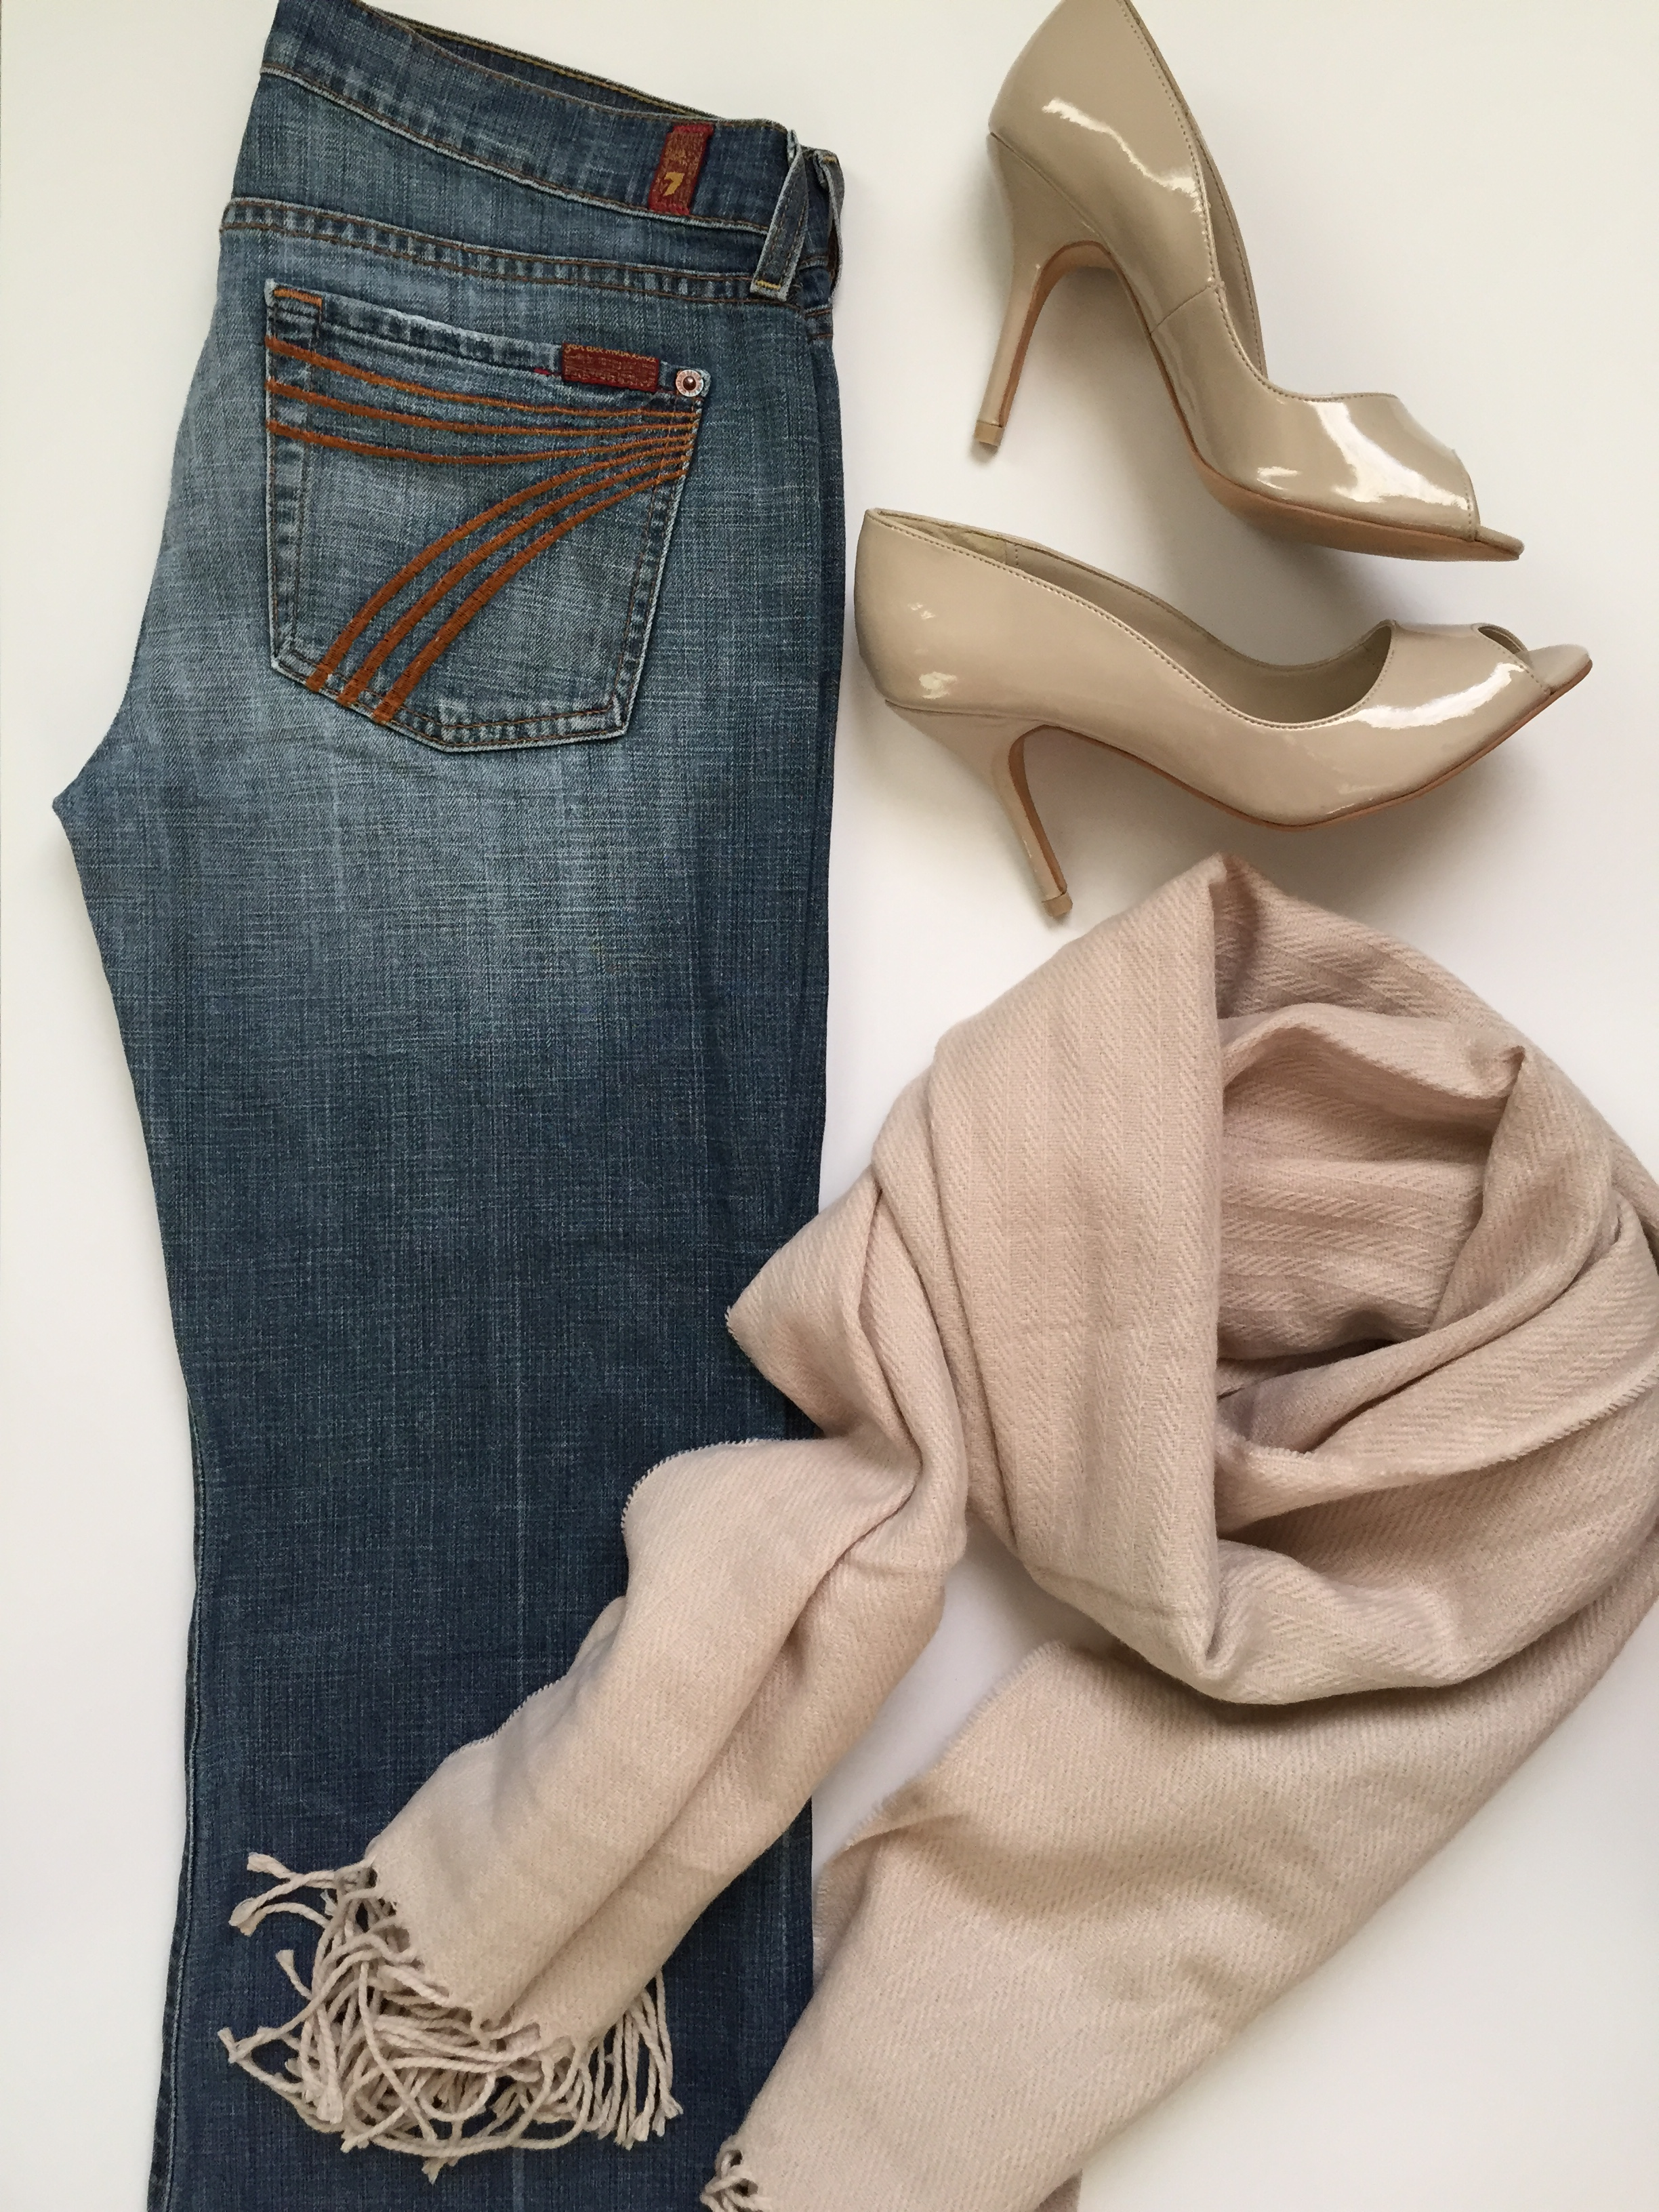 pinks.. blushes.. and denim